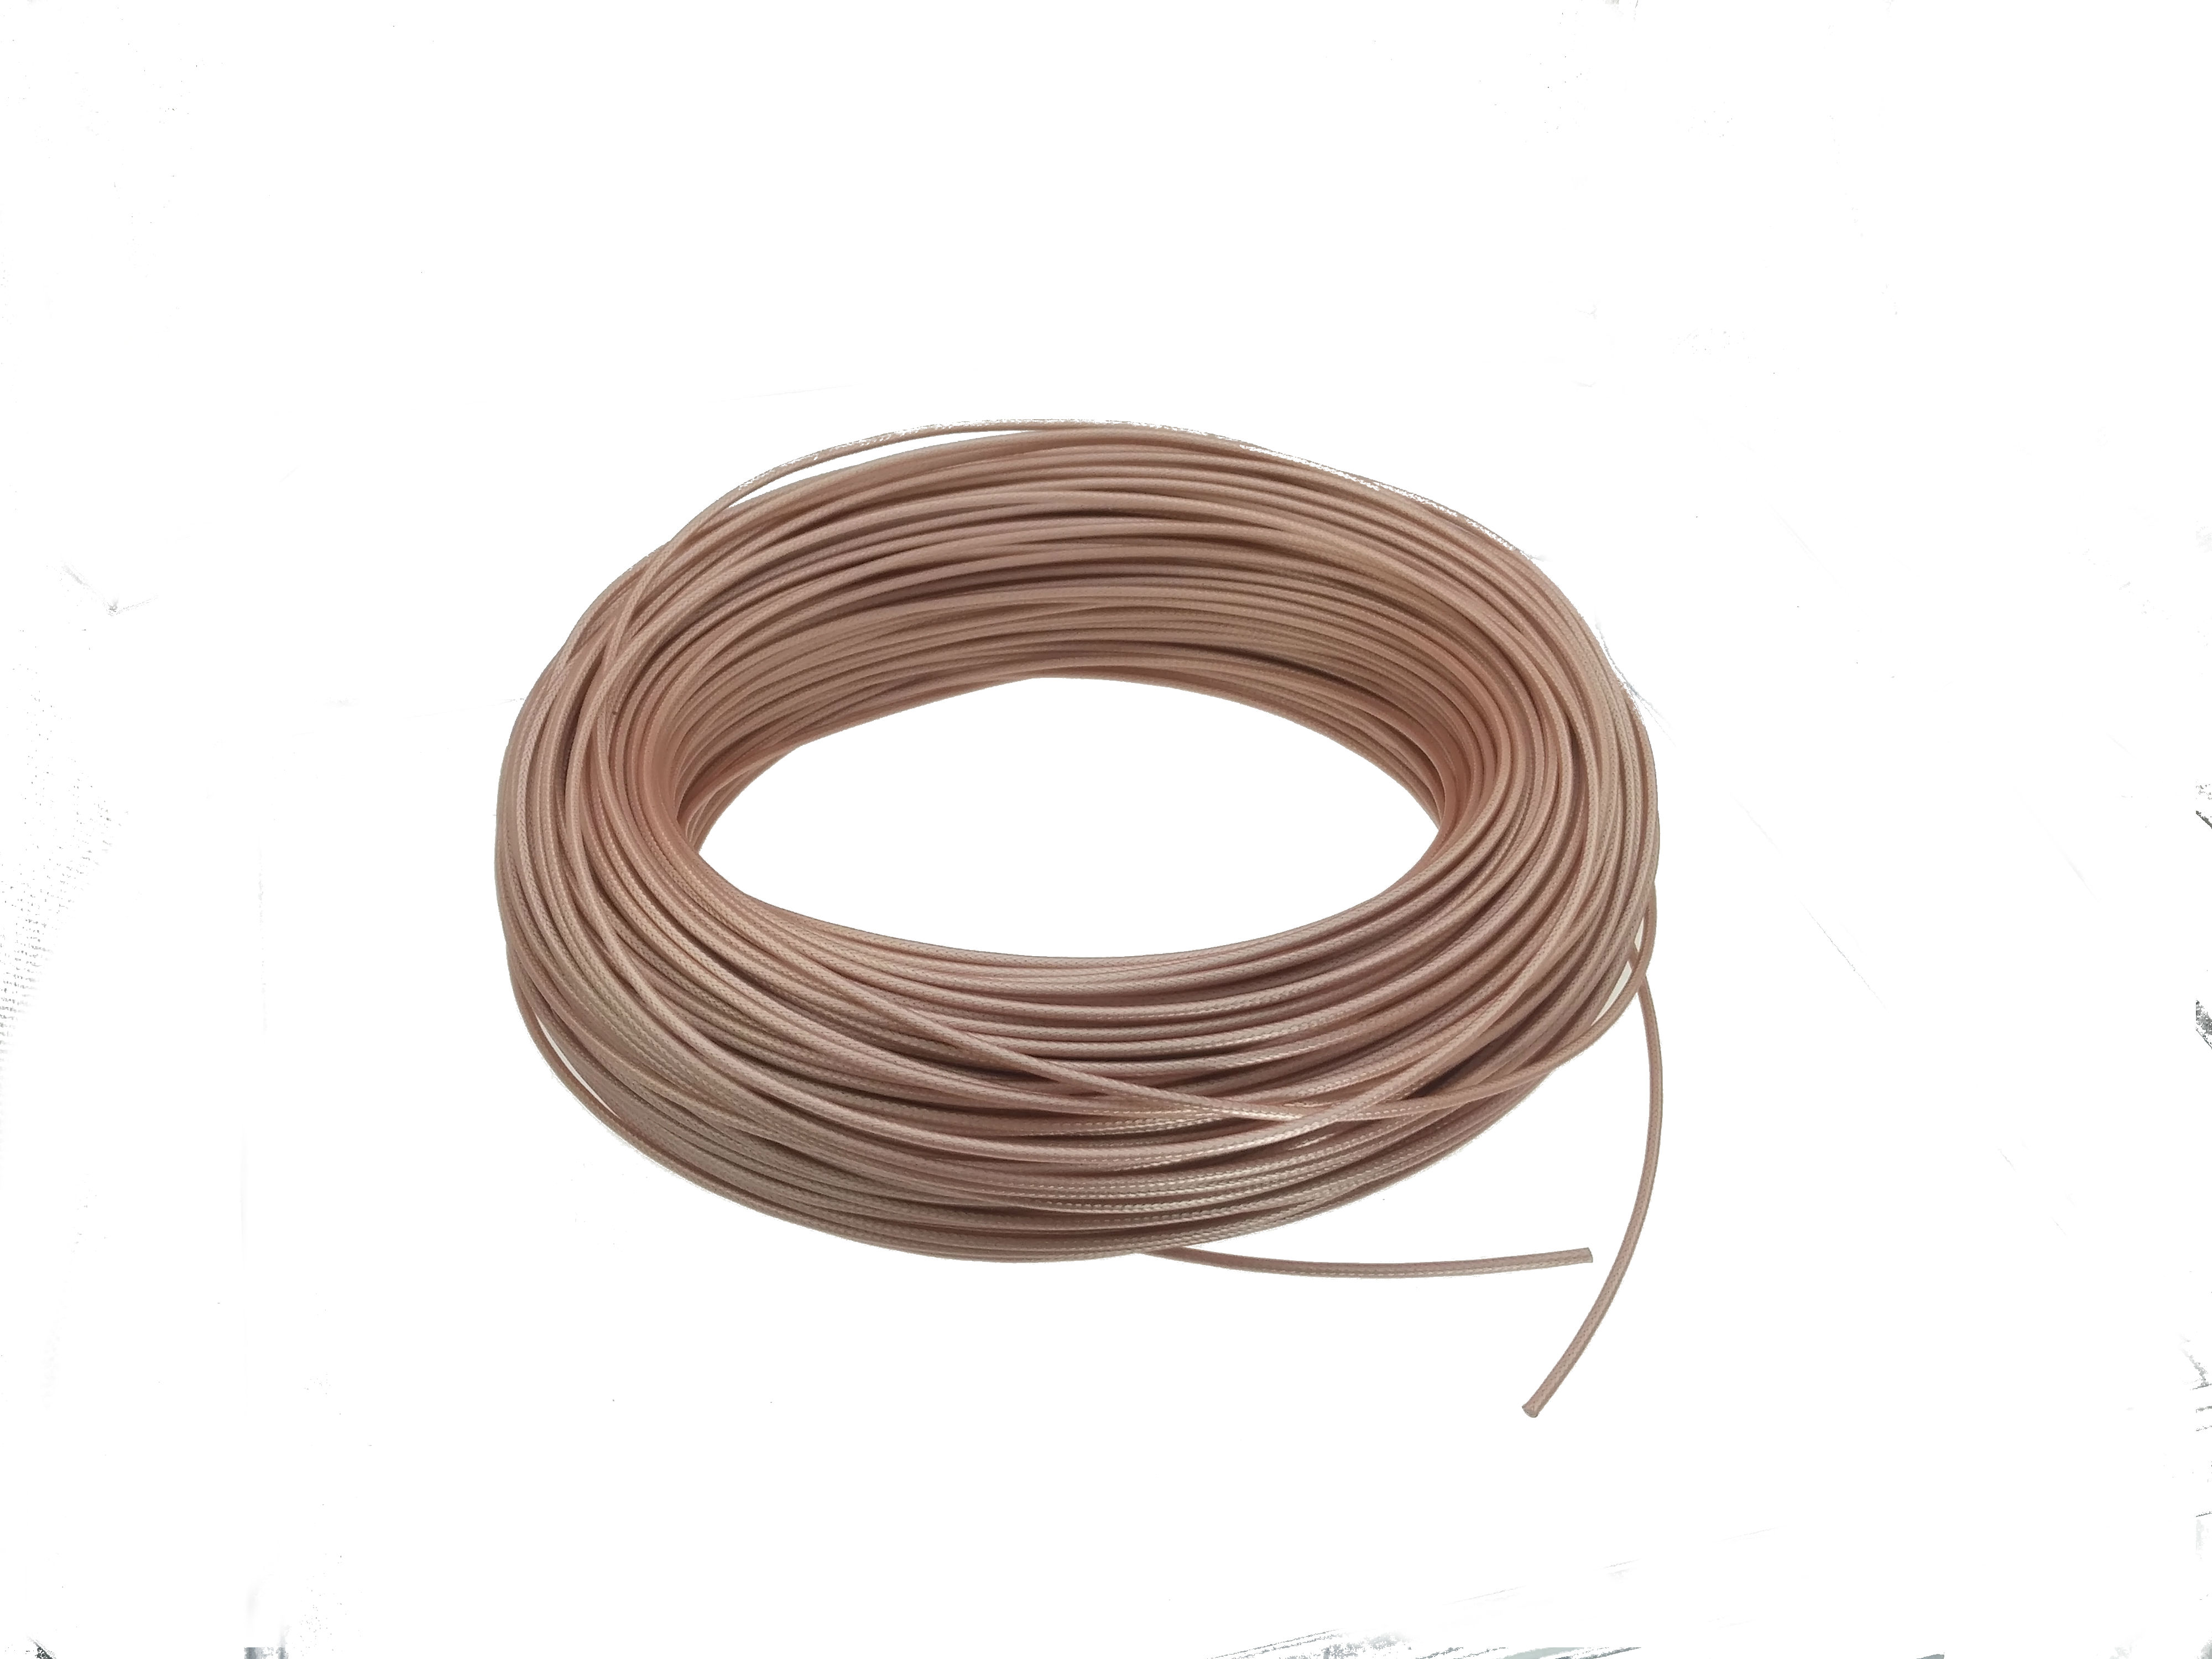 RG316 Cable RF Coax Coaxial Cable Wire Lot 50ohm M17/113 Shielded Pigtail  1M/2M/3M/5M/10M/20M